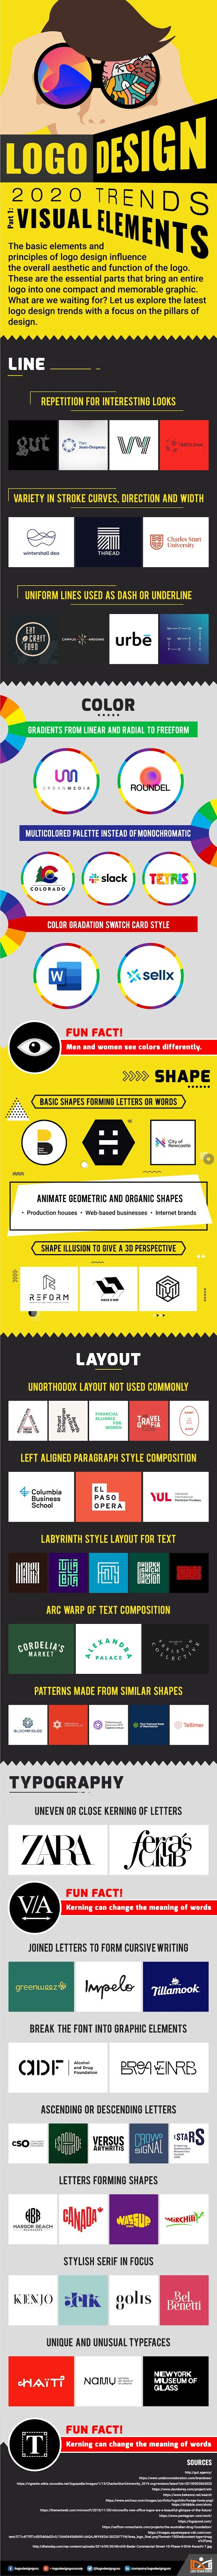 Logo Design Trends 2020: Going Over The Basics of Visual Elements #infographic #Logo Design #Graphic Design #Trends #Logo Design Trends